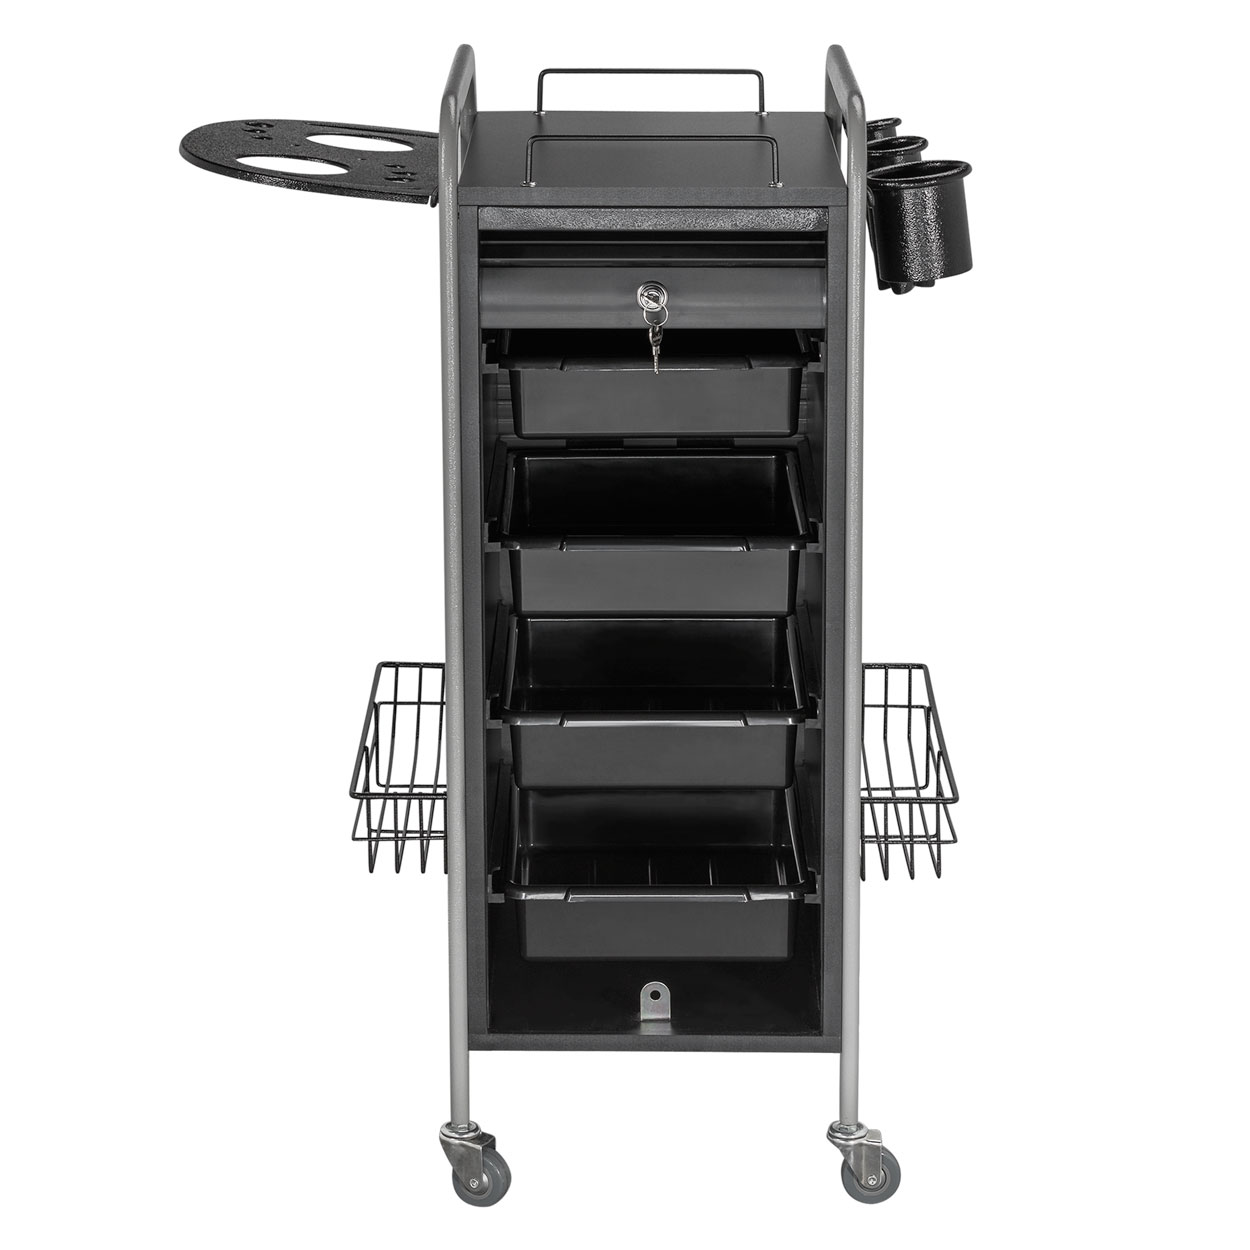 Hair Salon Metal Locking Trolley Cart with Appliance Holder alternative product image 3